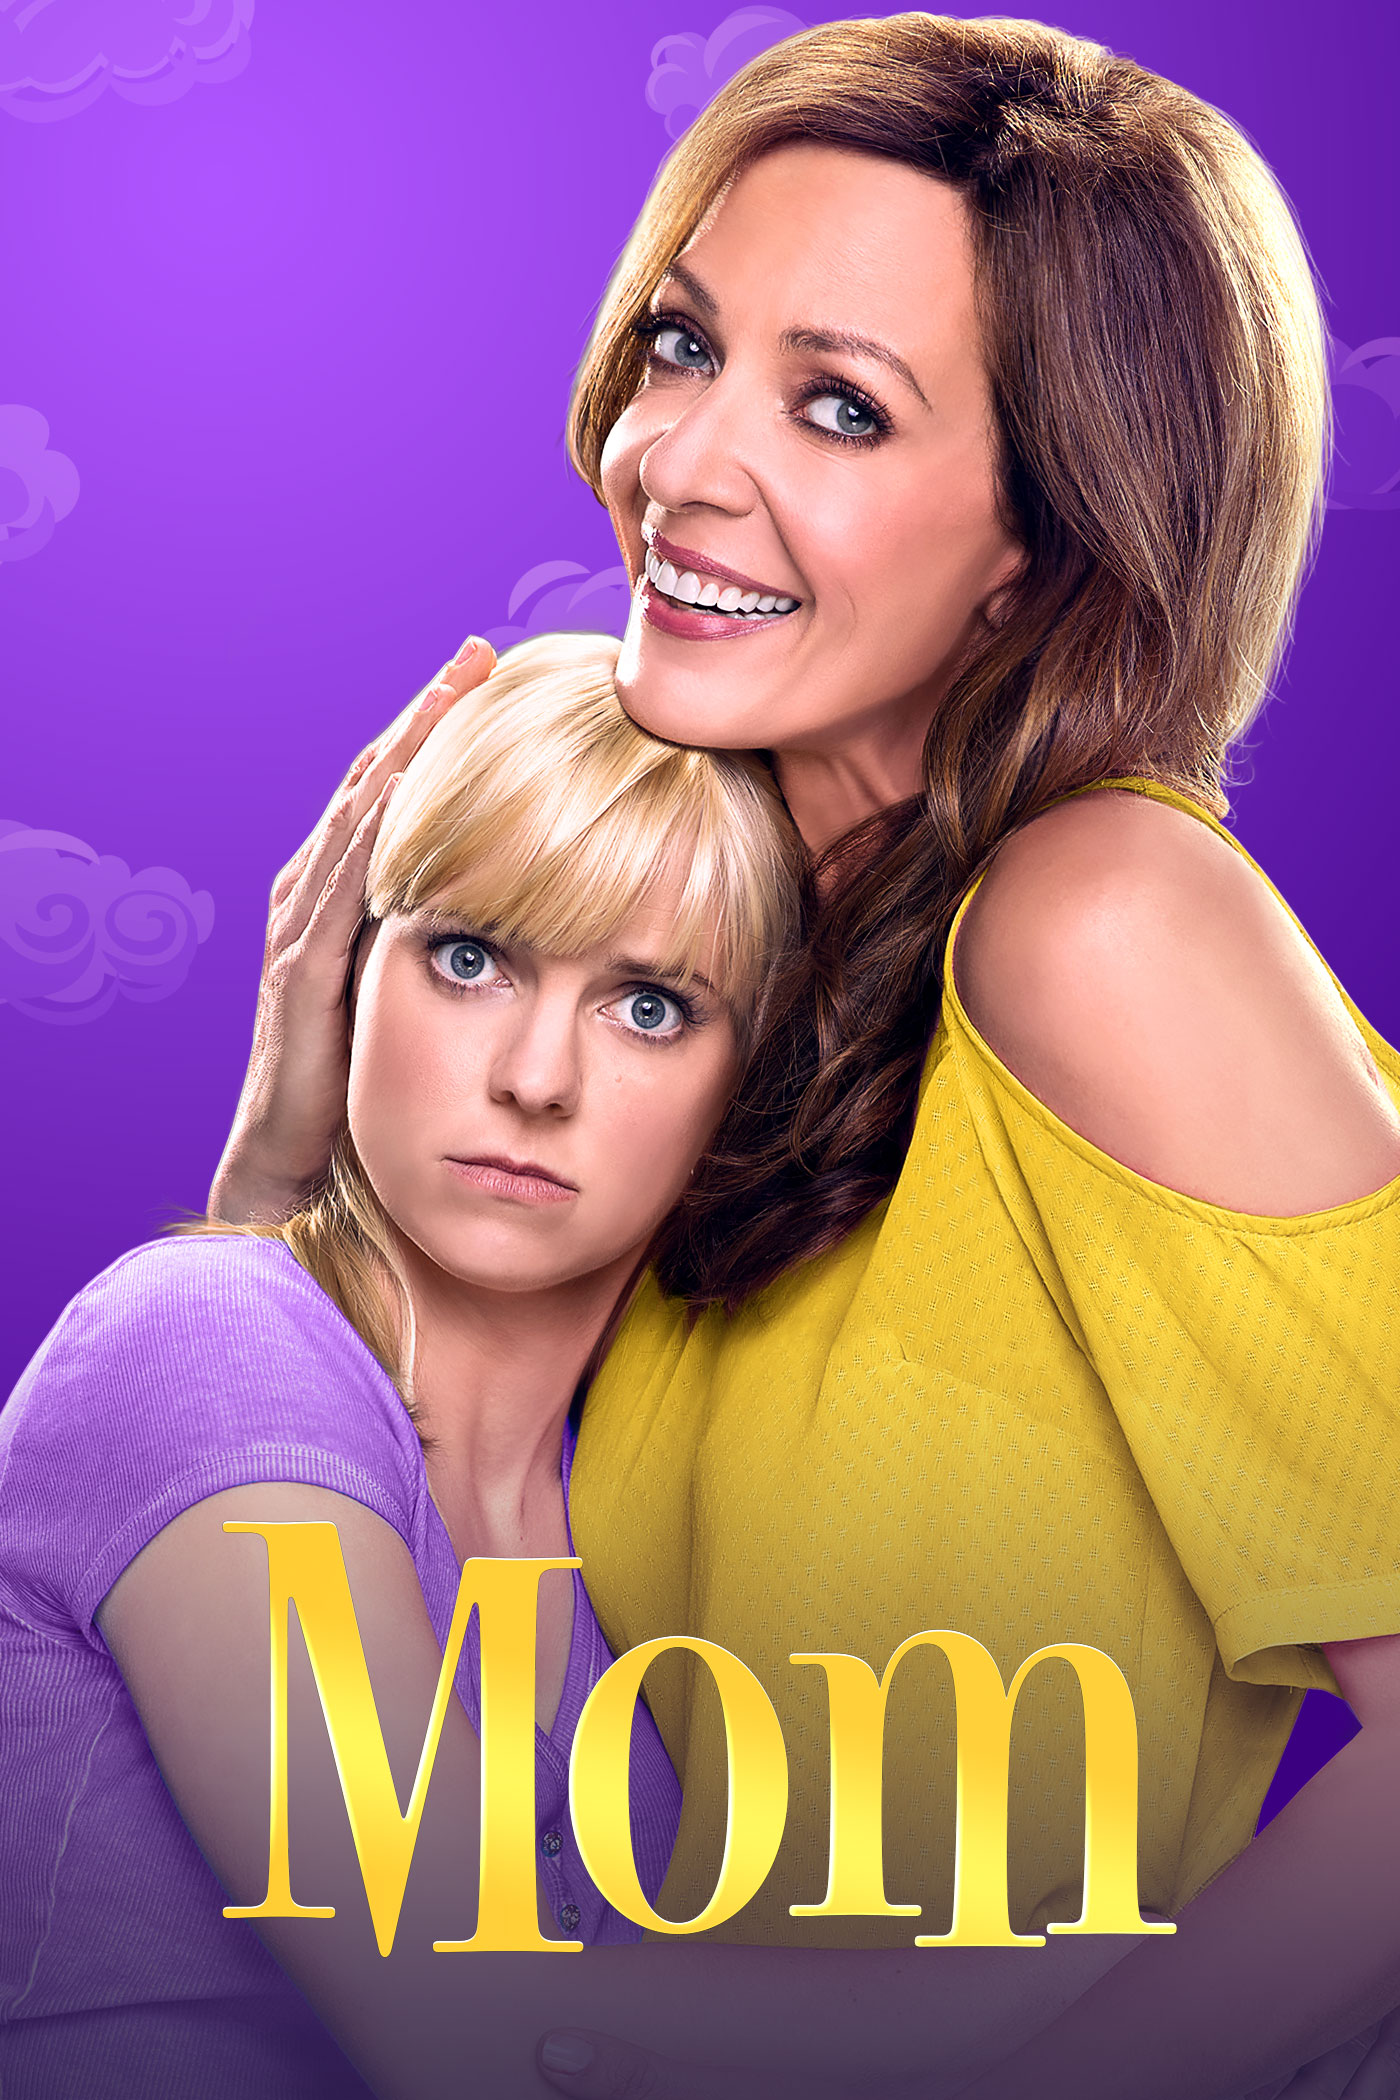 Allison Janney and Anna Faris in Mom (2013)